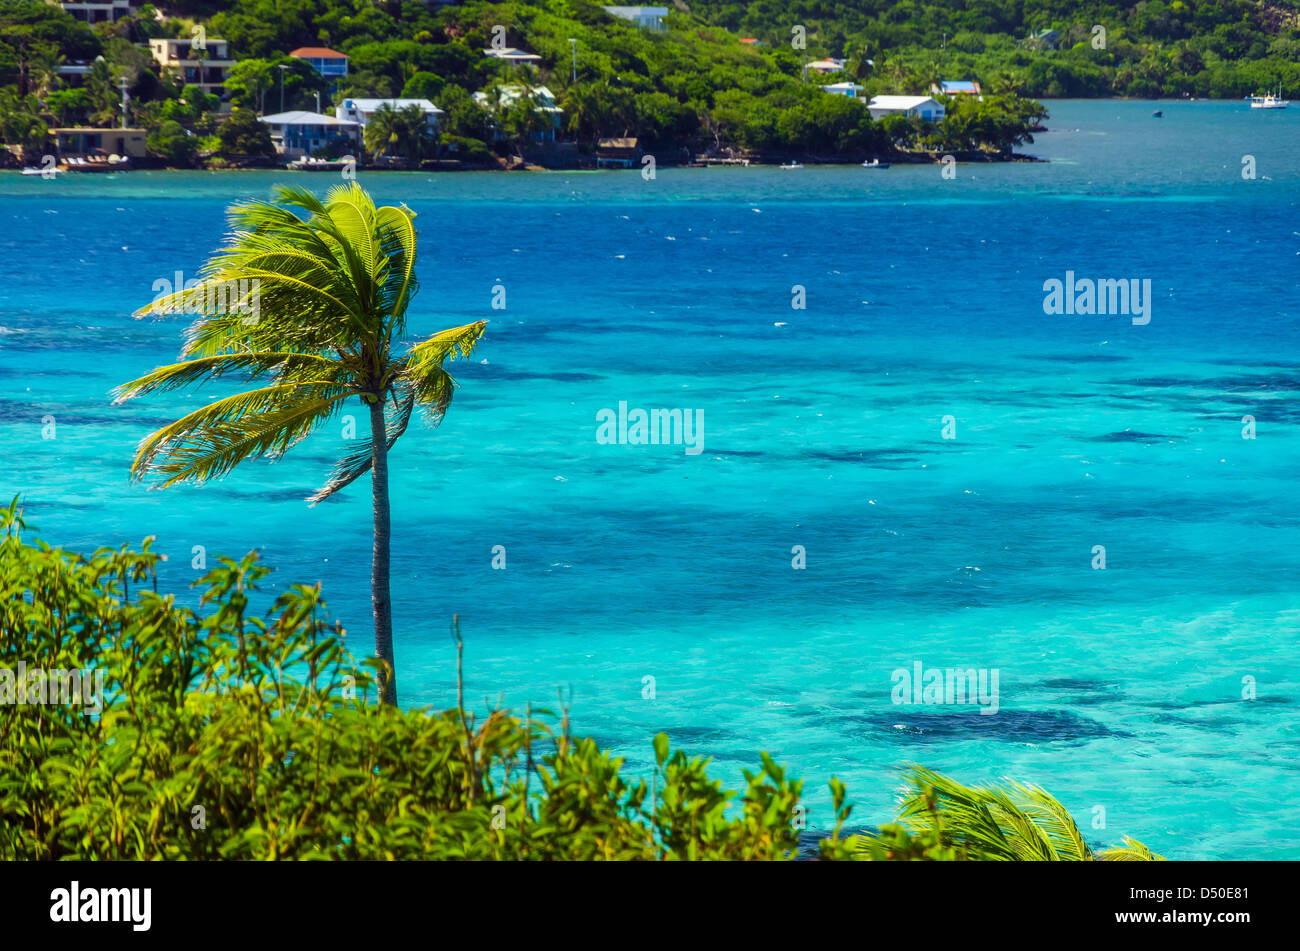 Palm trees and turquoise sea with island and houses in background in San Andres y Providencia, Colombia - Stock Image